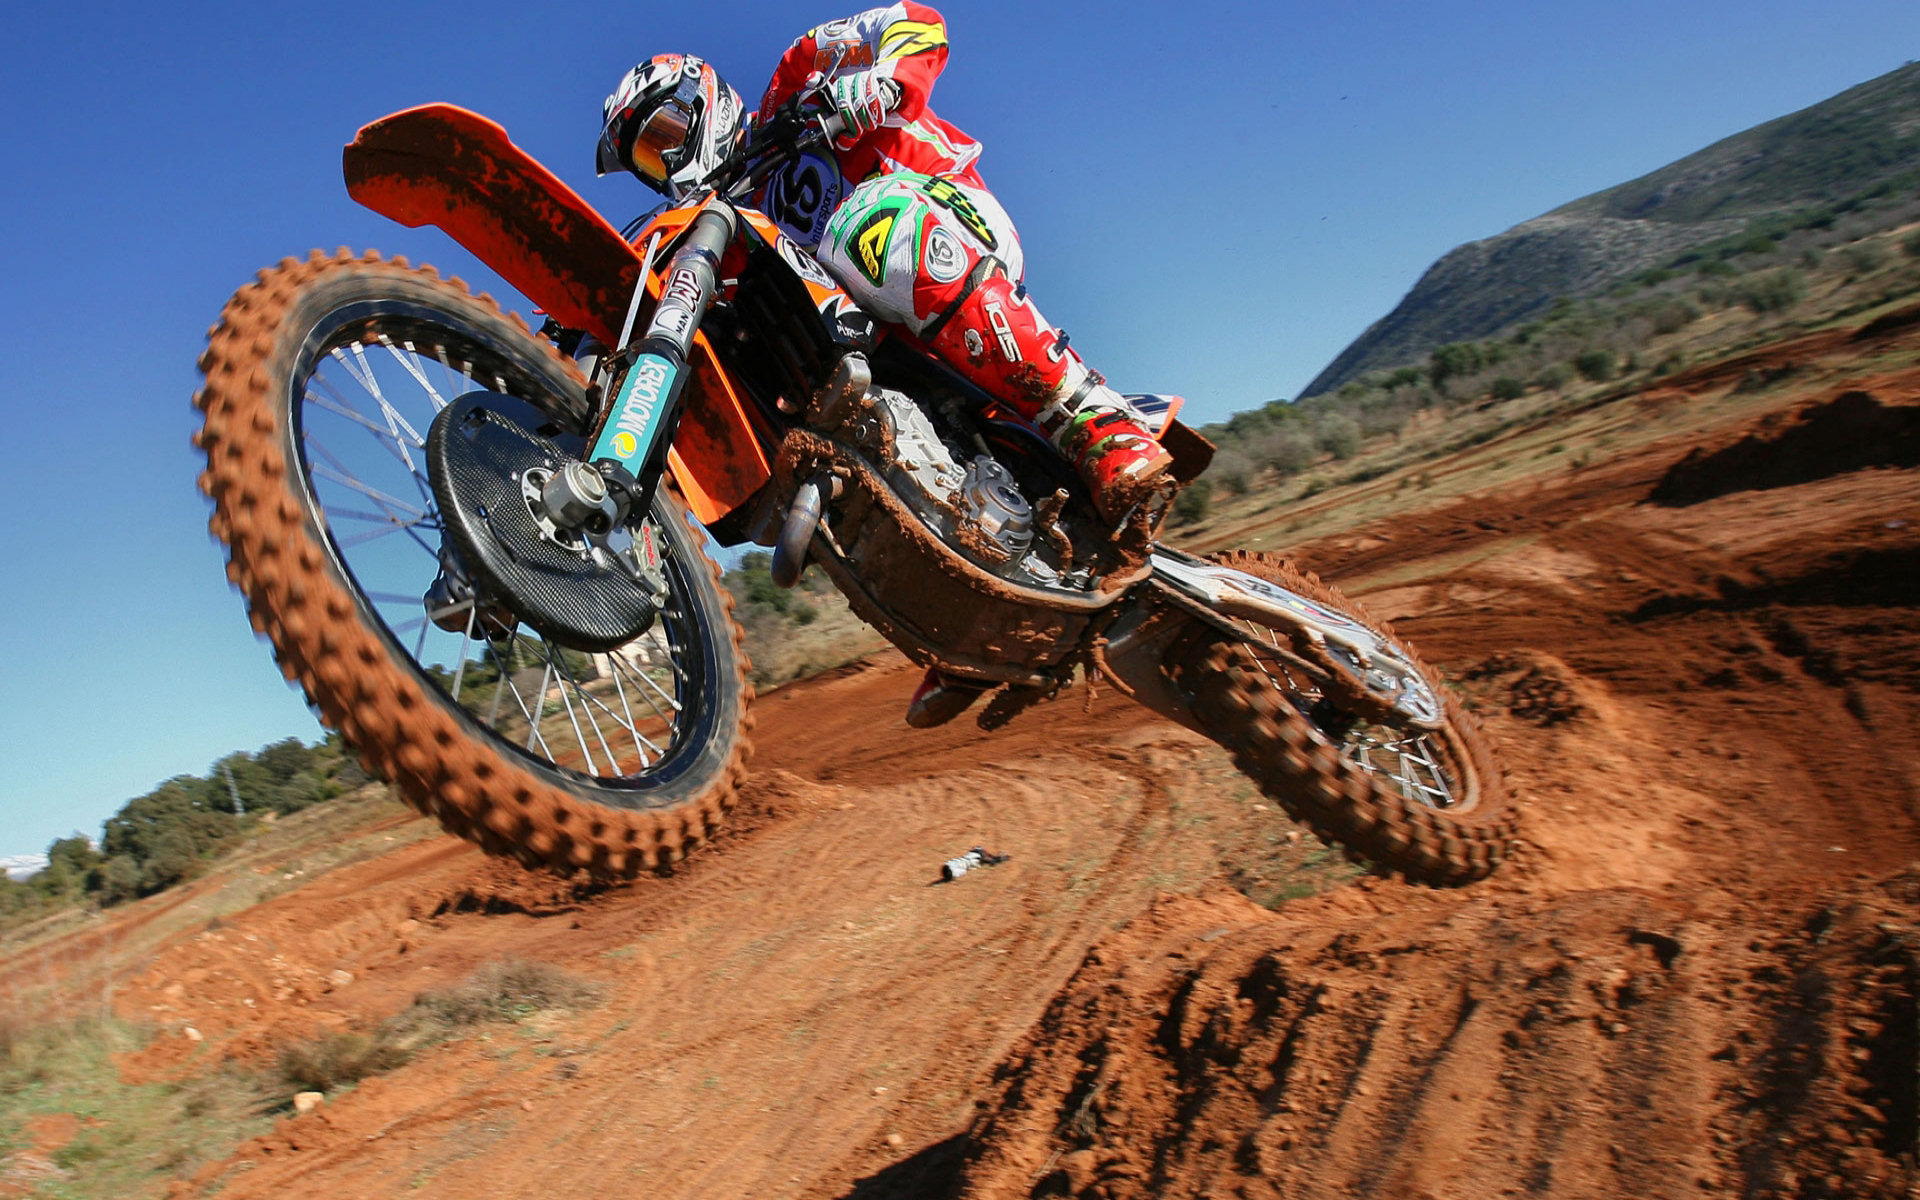 49 Dirt Bike Wallpapers For Desktop On Wallpapersafari